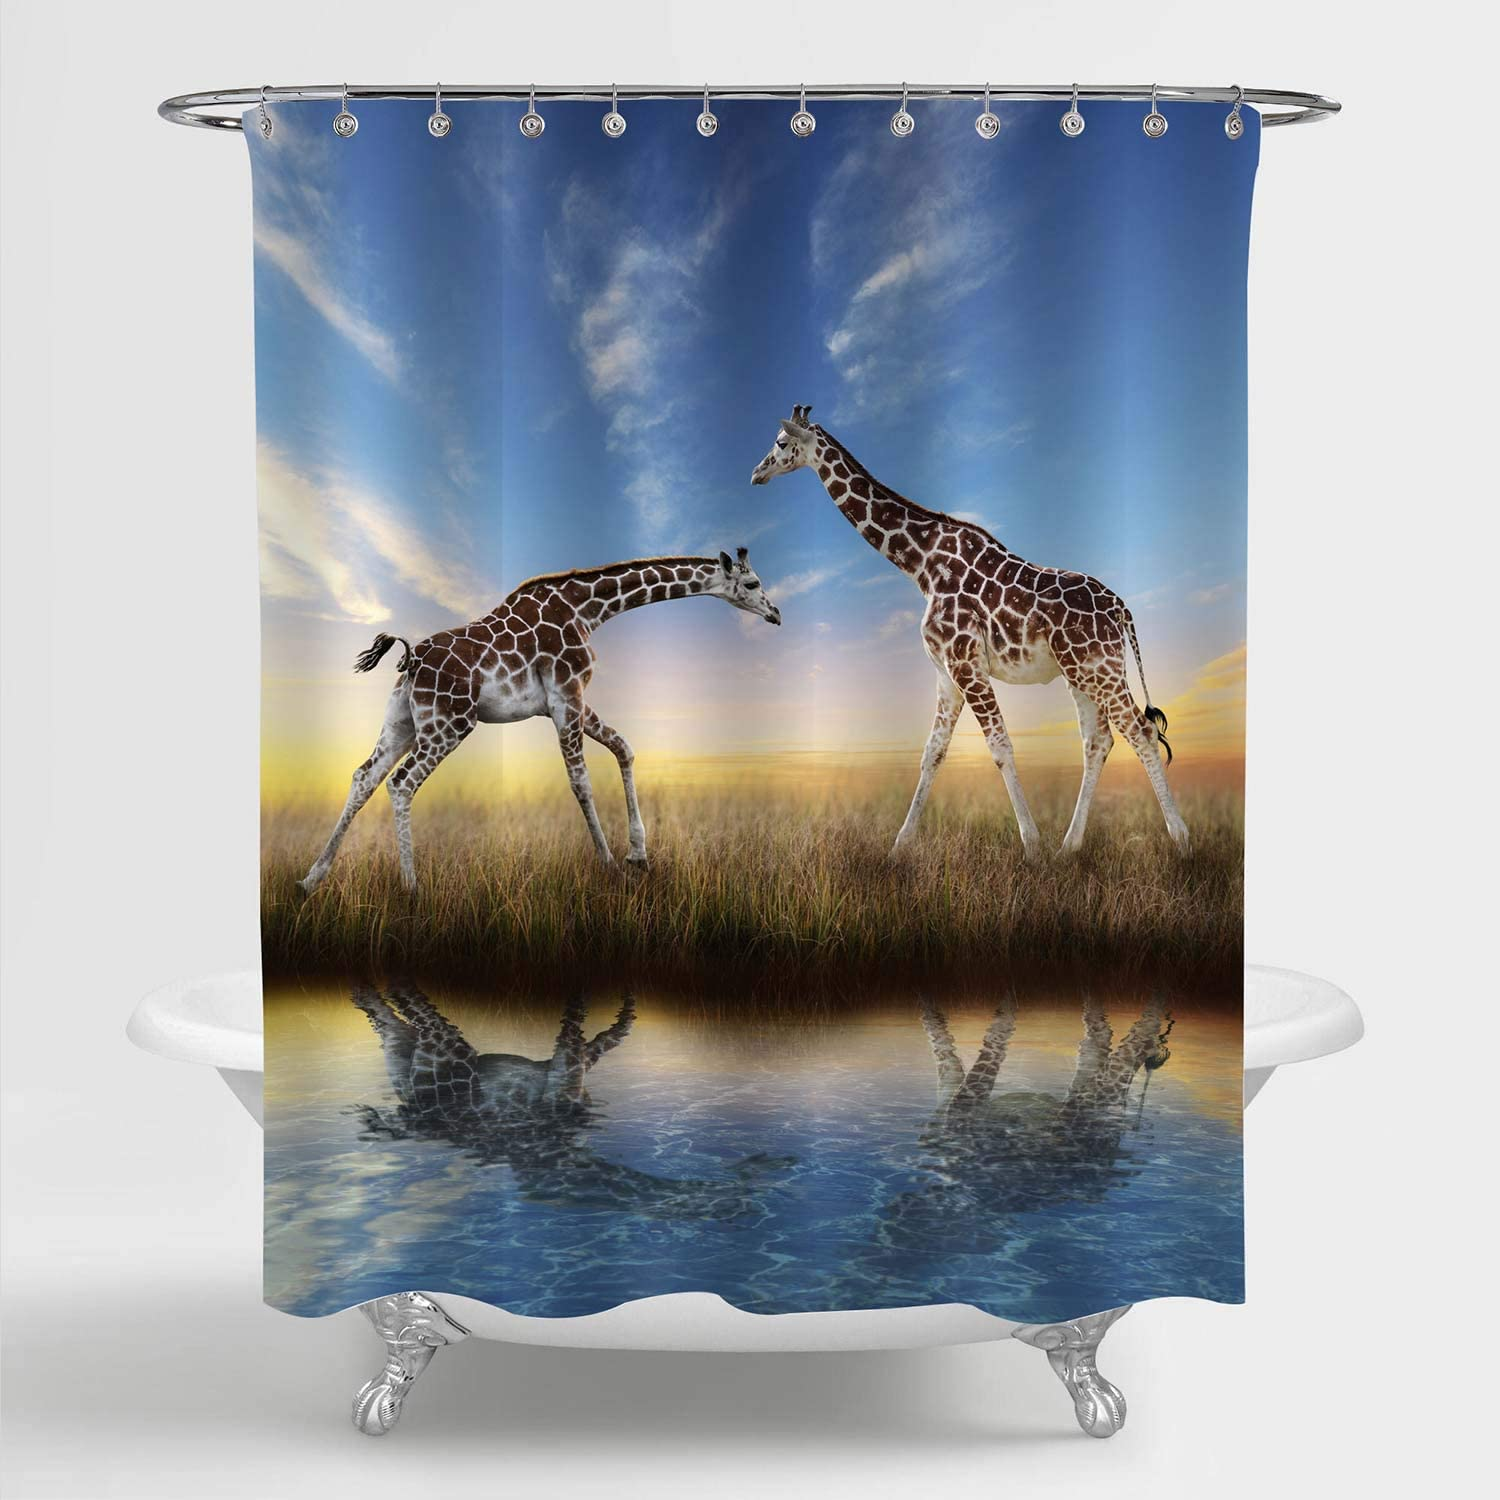 MitoVilla Giraffe Shower Curtain Set with Hooks for Bathroom Decor, Giraffes Playing at African Safari Sunset Bahtoom Accessories, Giraffe Gifts for Men, Women and Kids, Blue, Brown, 72